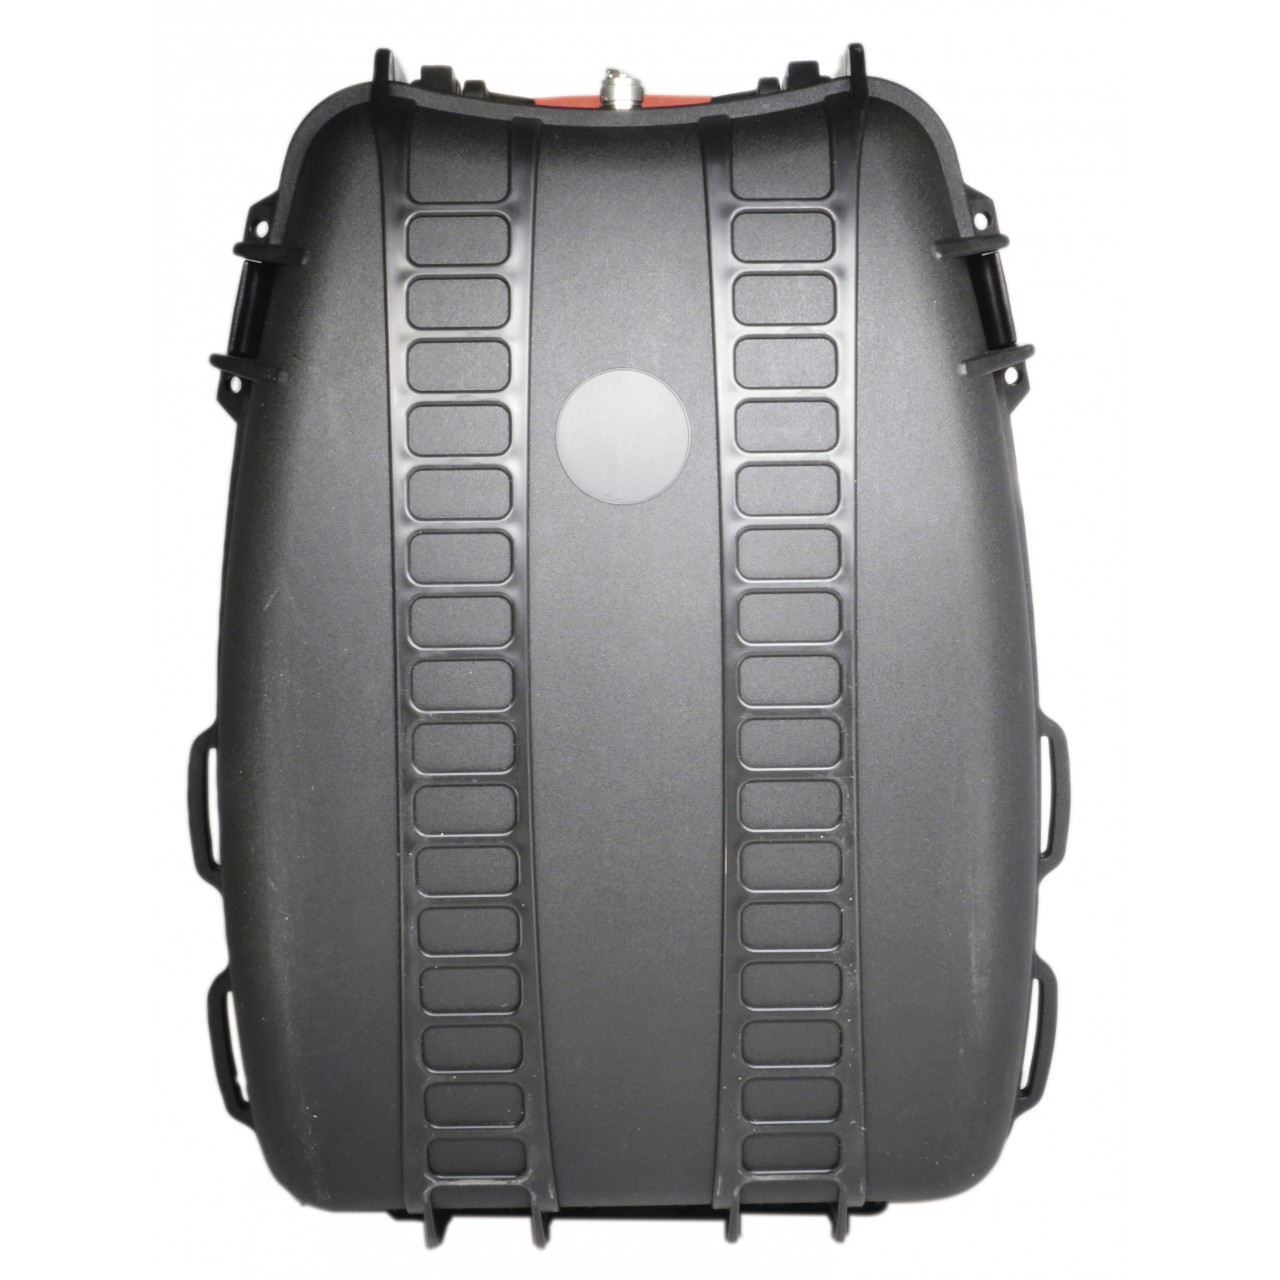 IF-A120E BACKPACK Mobiles - ICOM